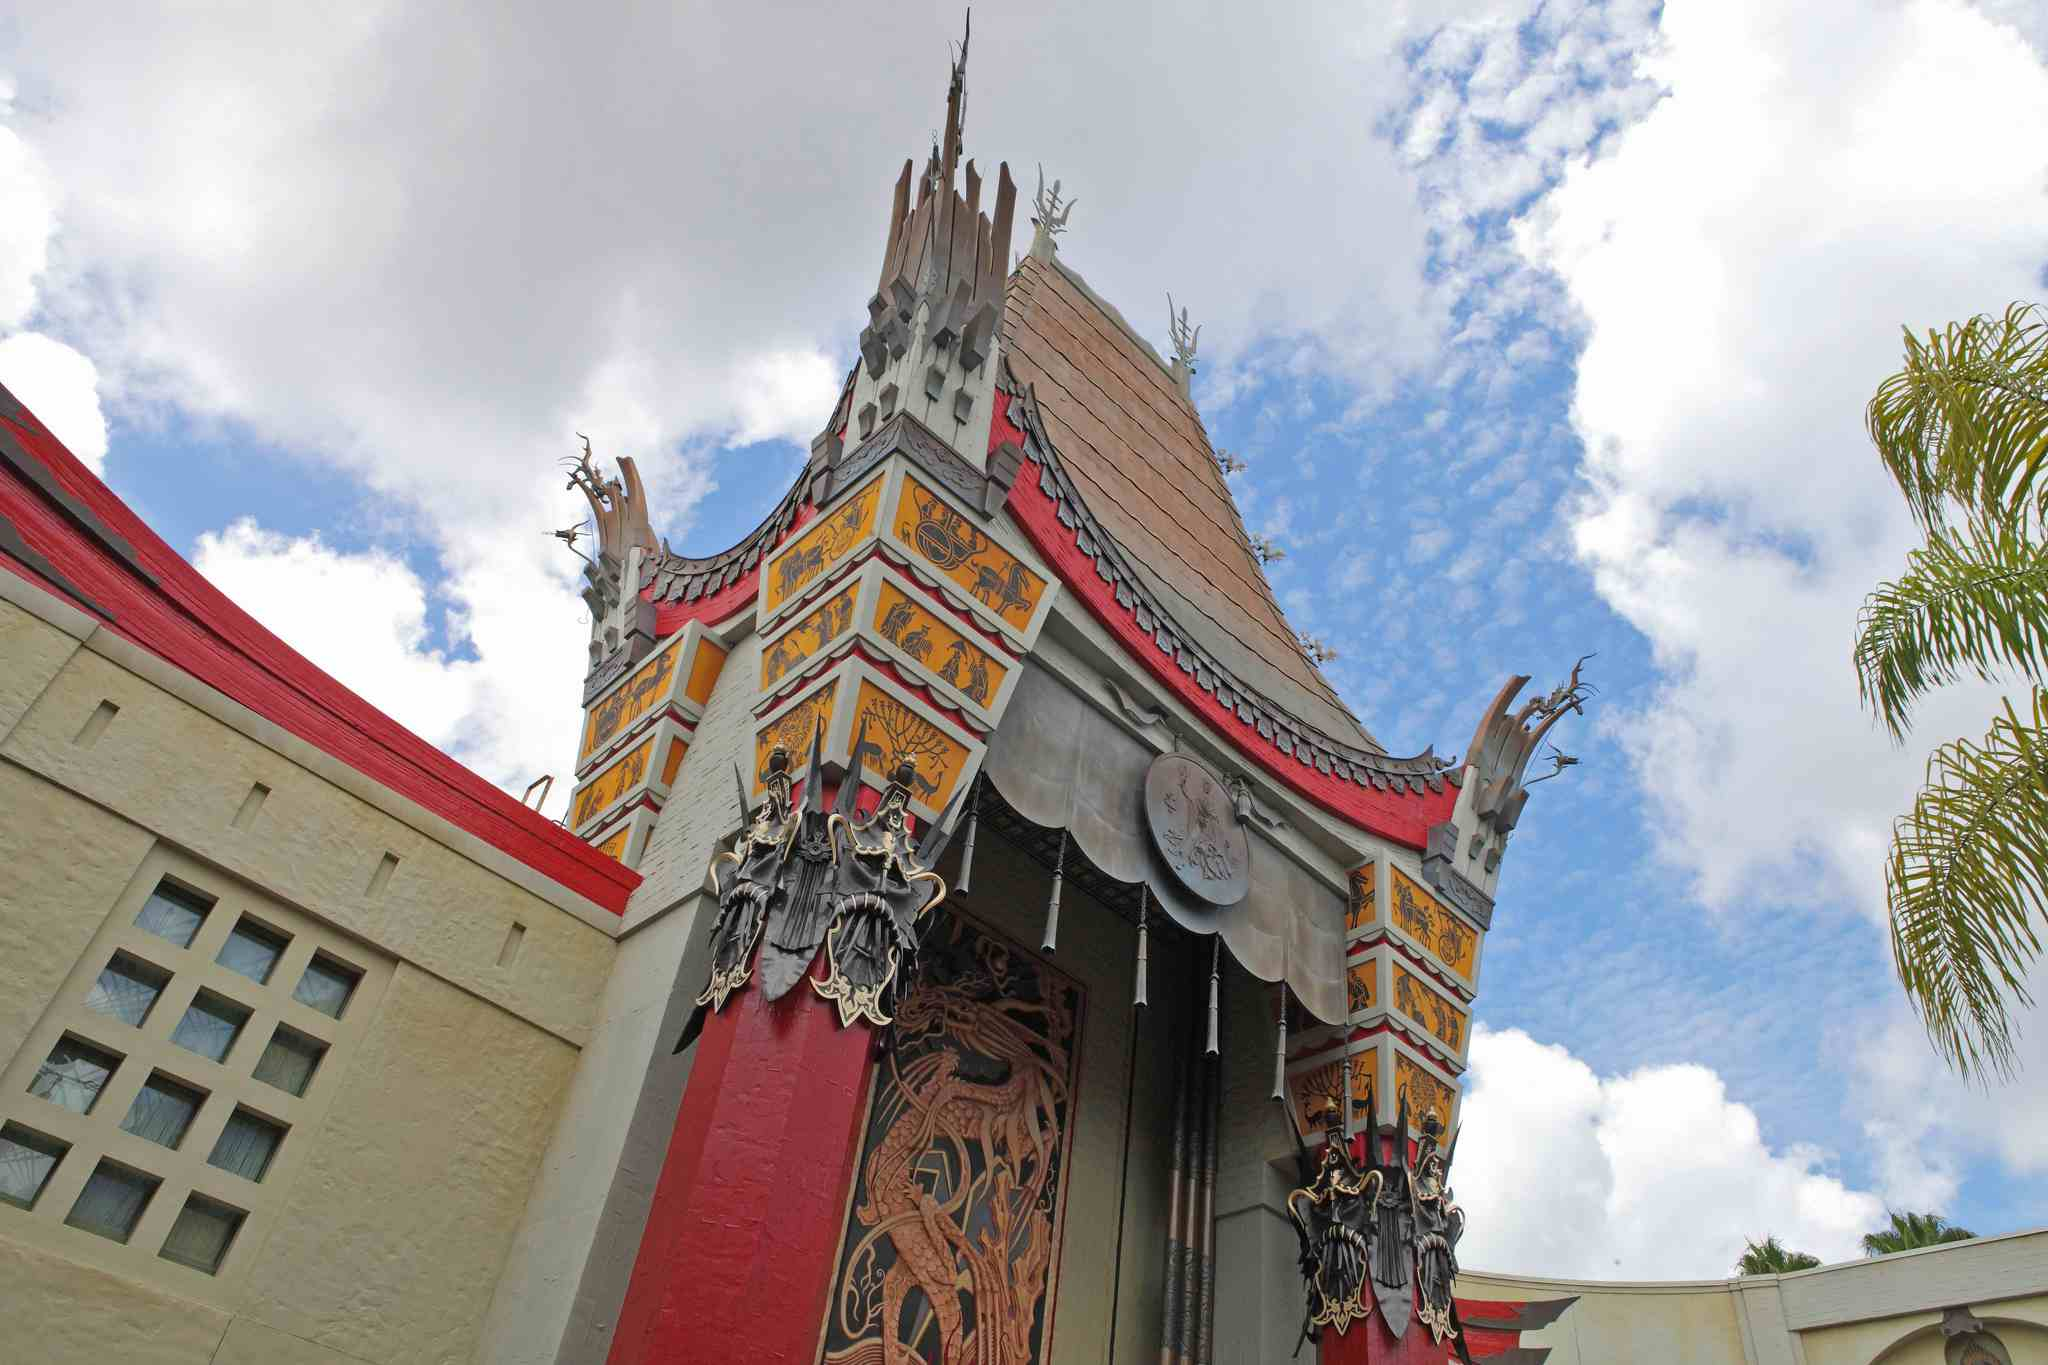 The Chinese Theatre, home of the Great Movie Ride, at Disney's Hollywood Studios.